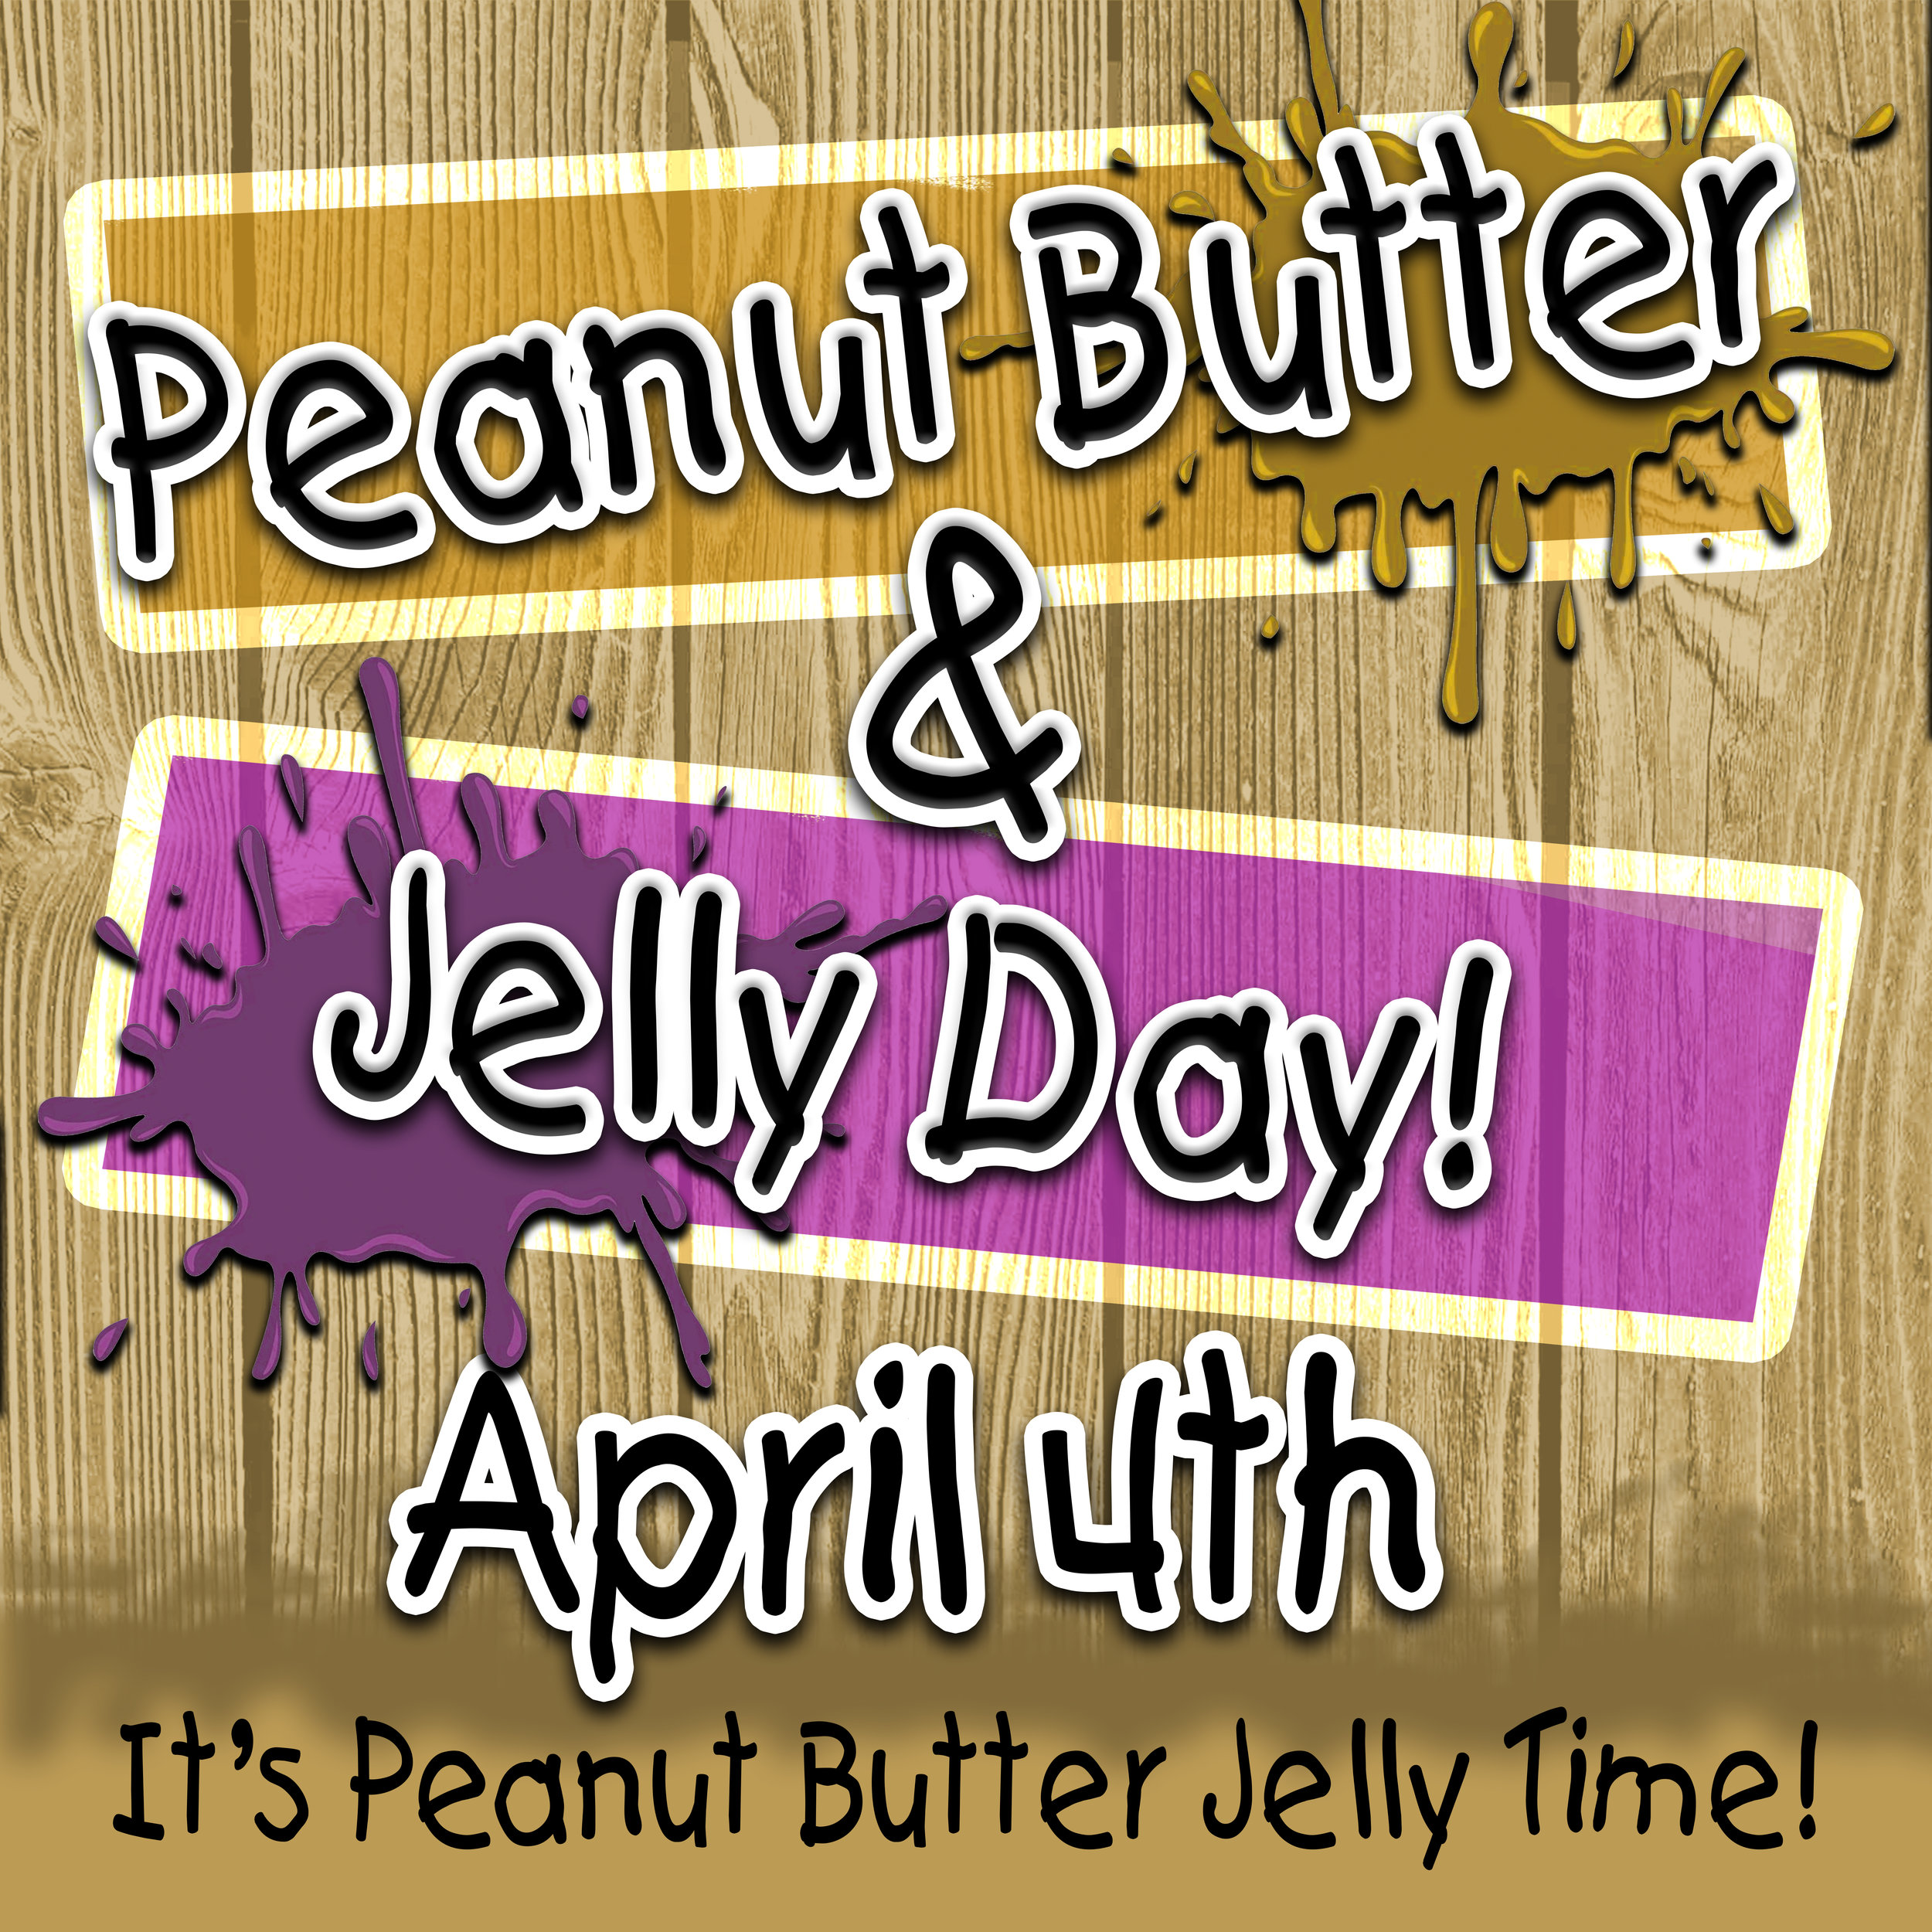 Peanut Butter and Jelly.jpg